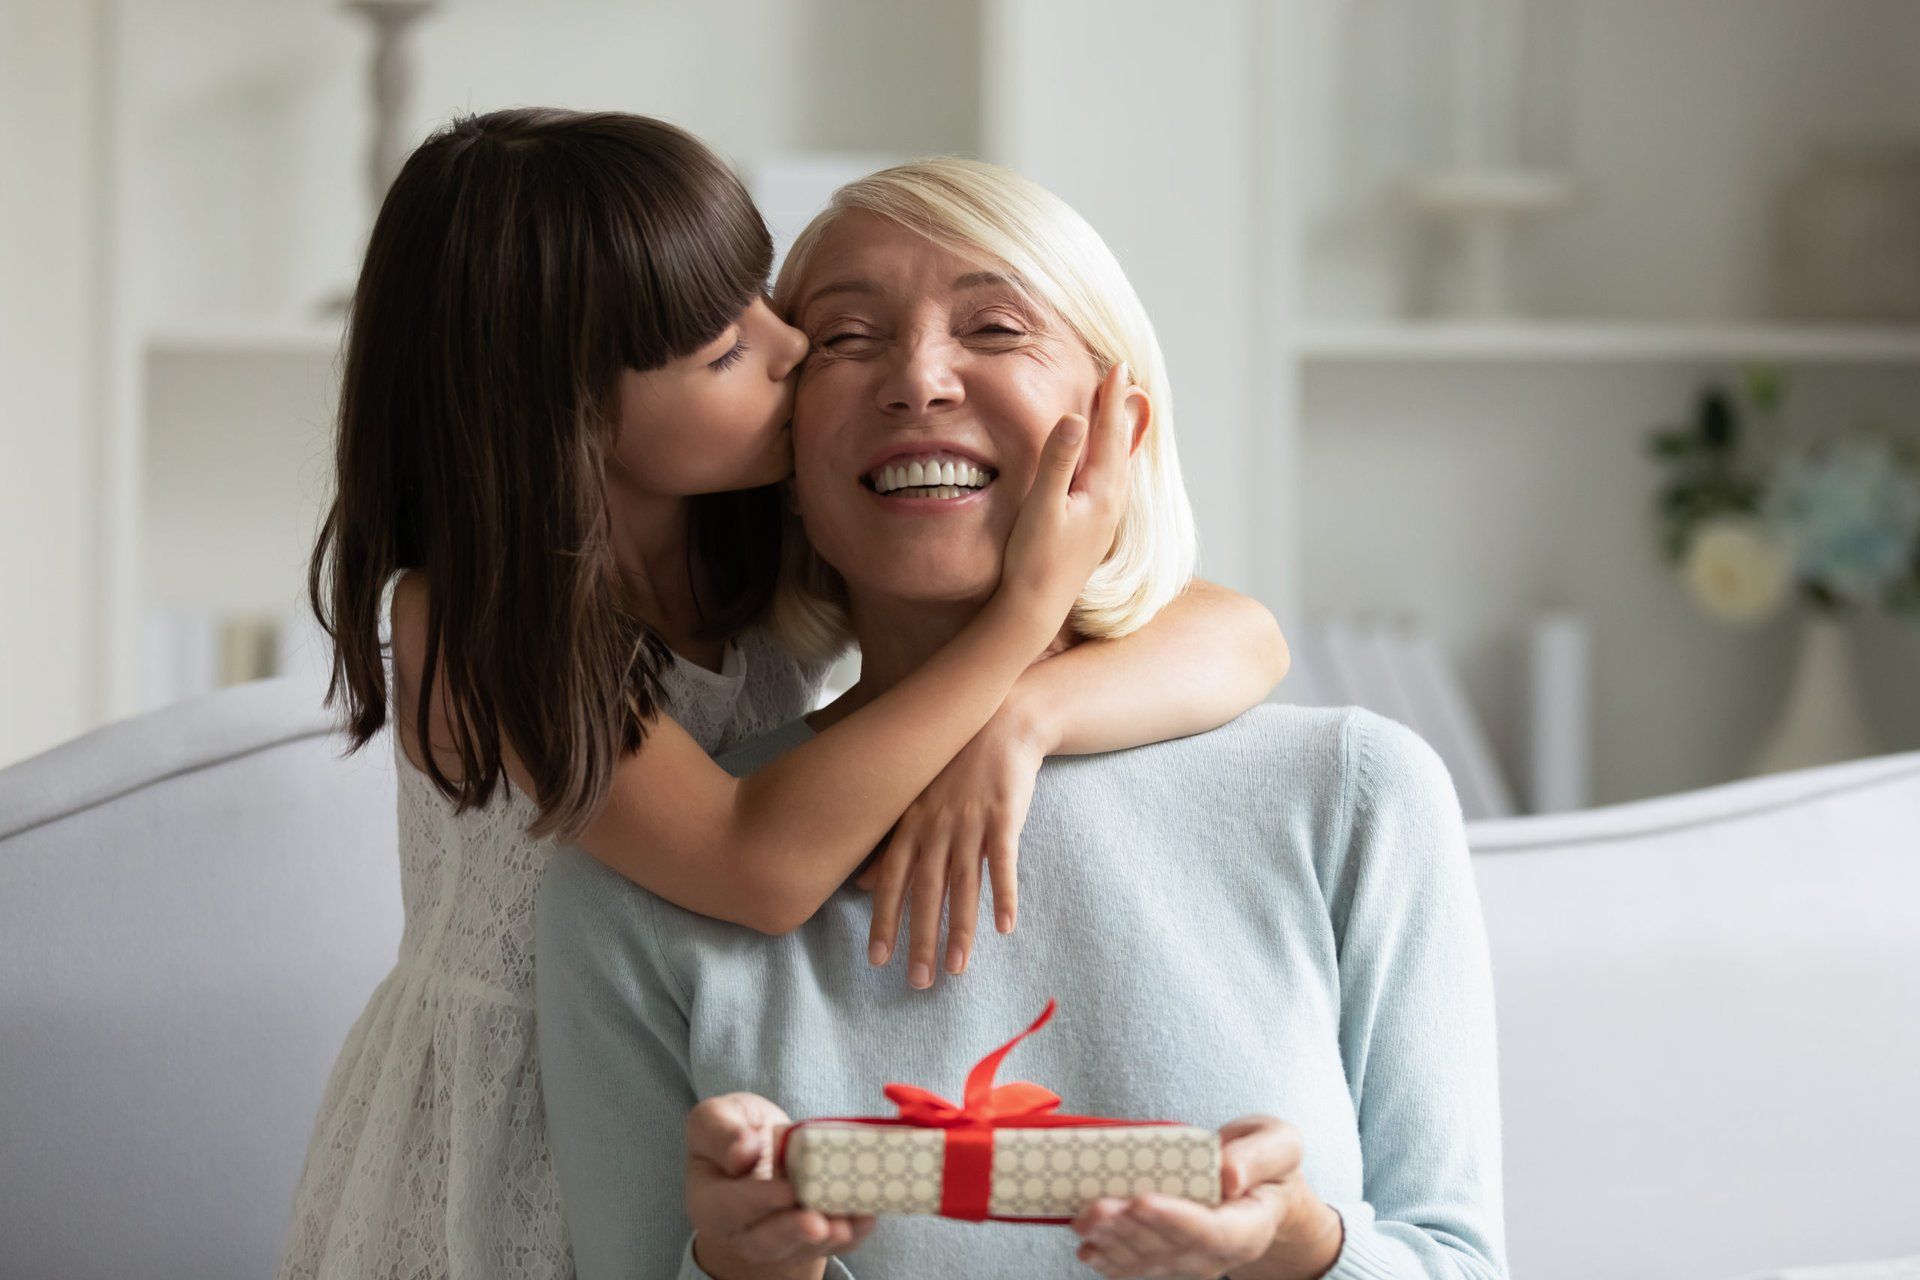 Child giving a gift to her grandmother